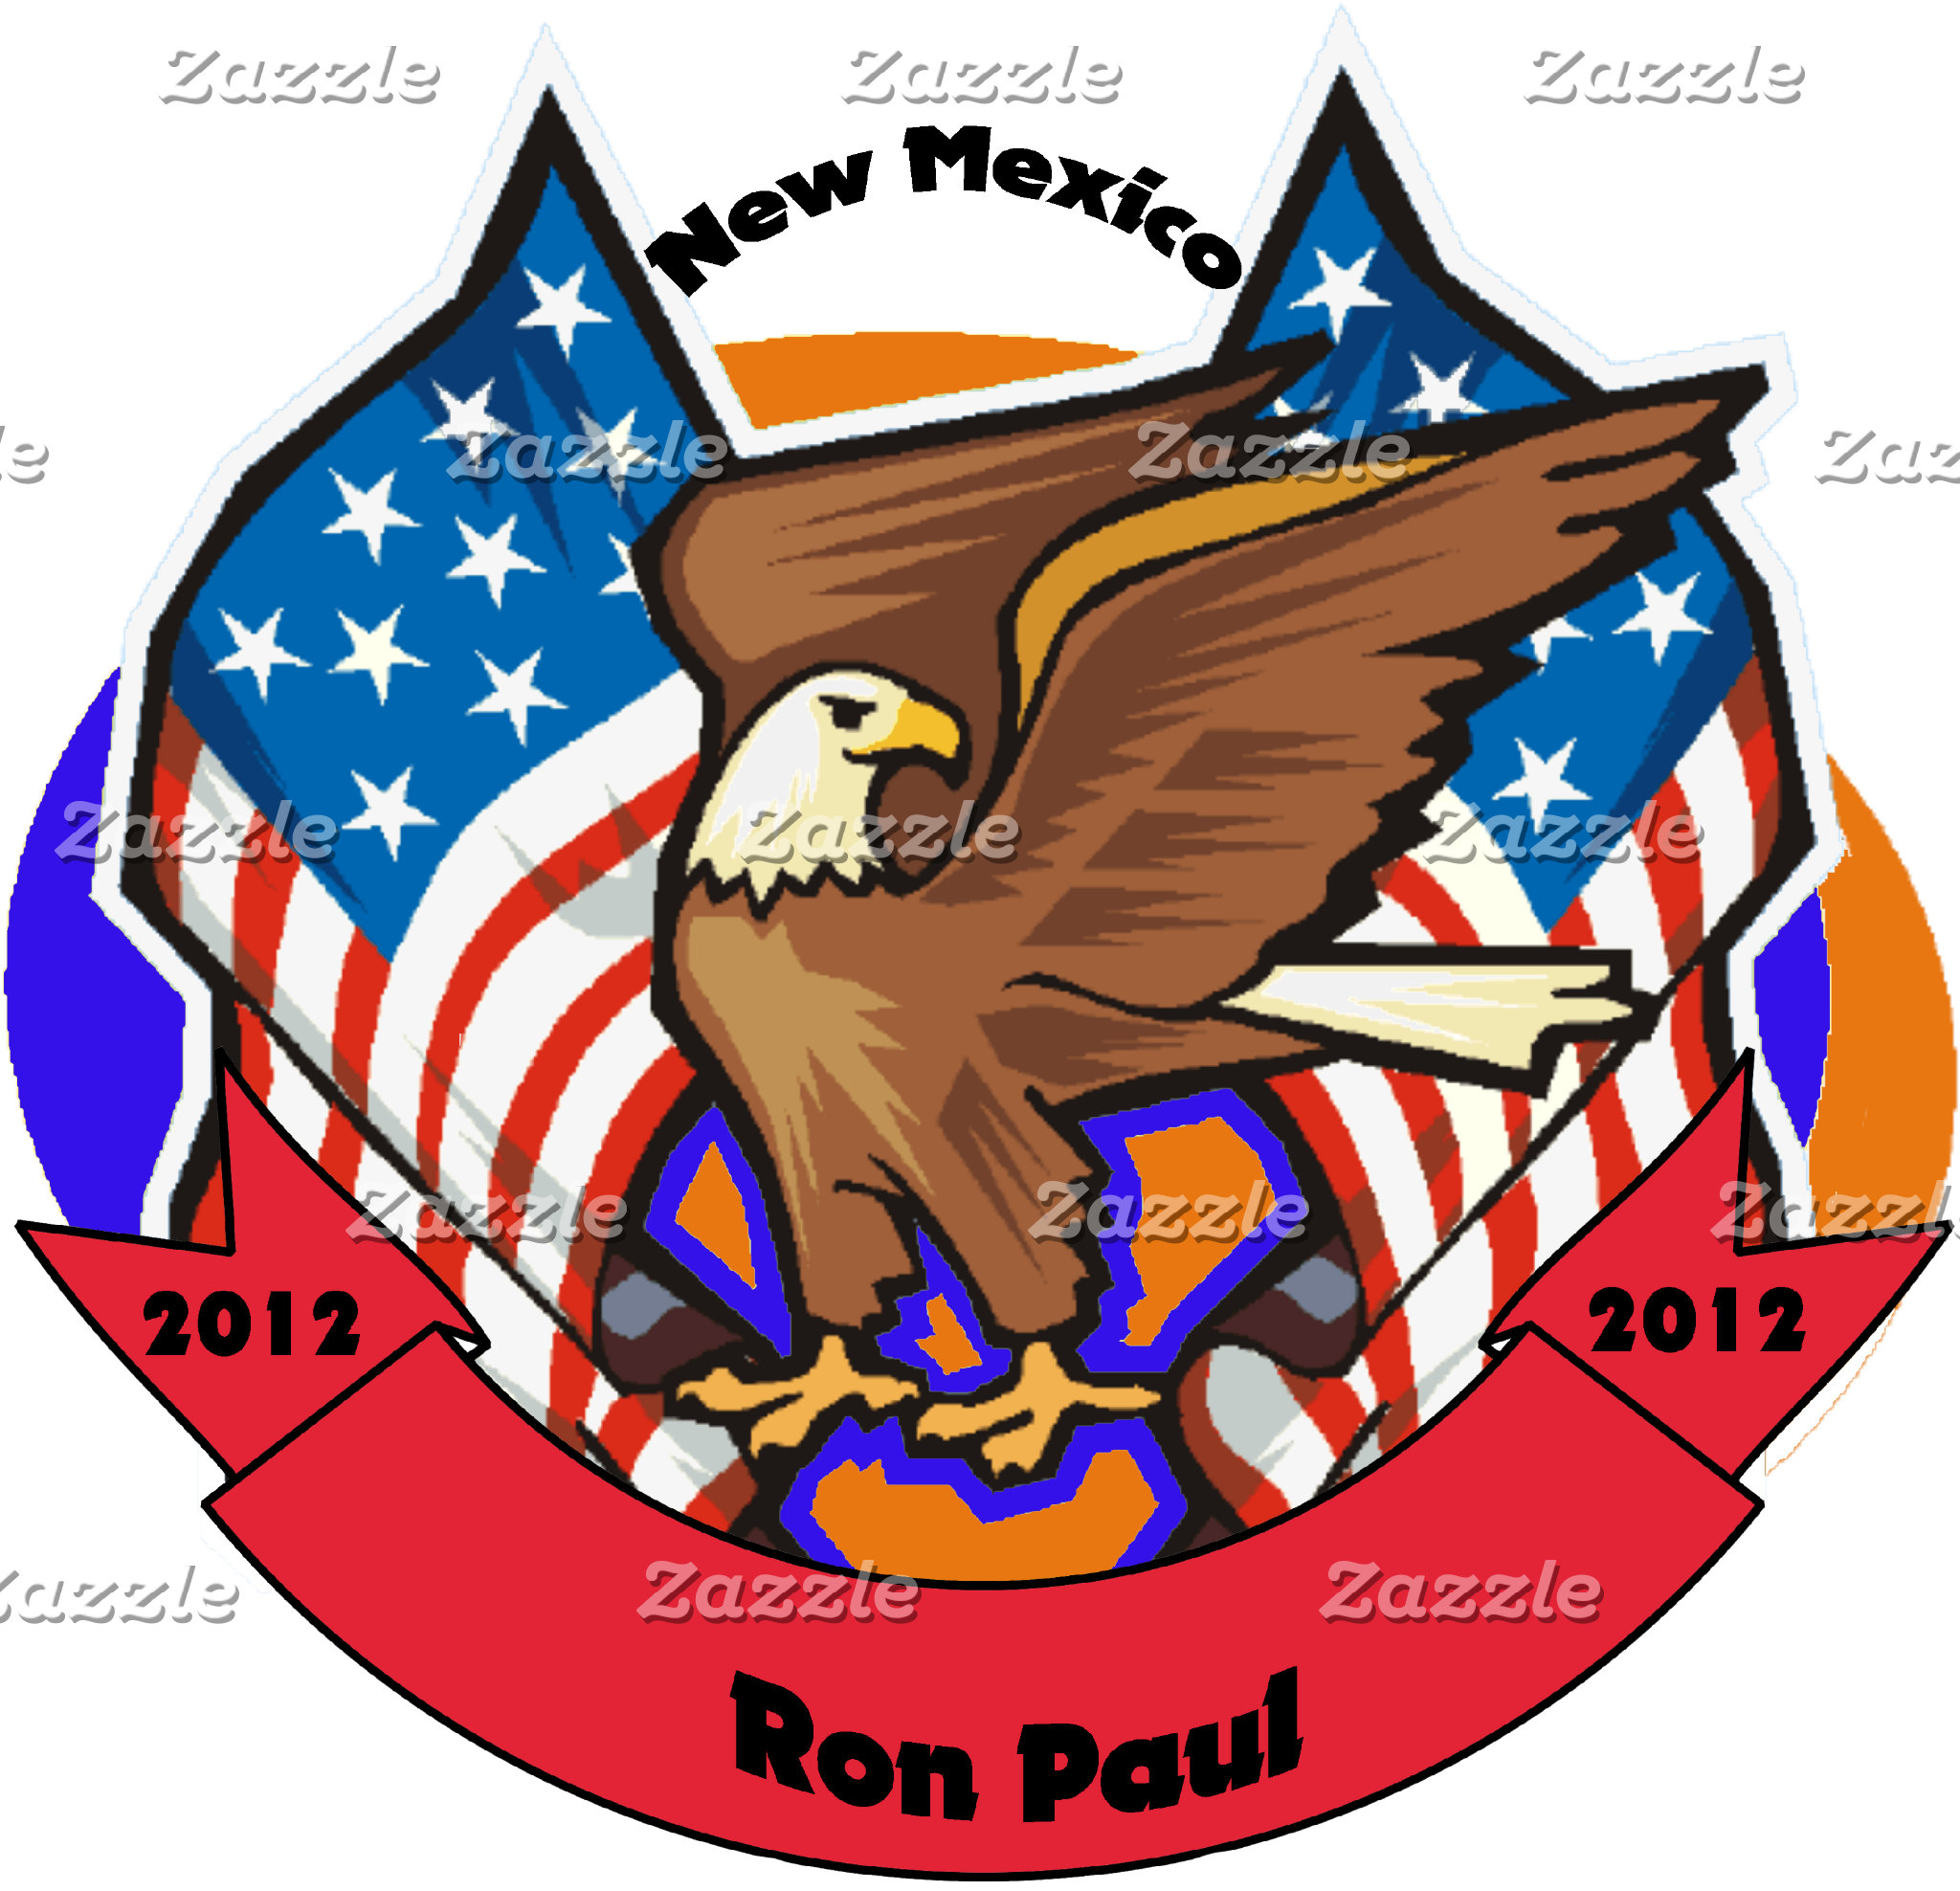 New Mexico for Ron Paul